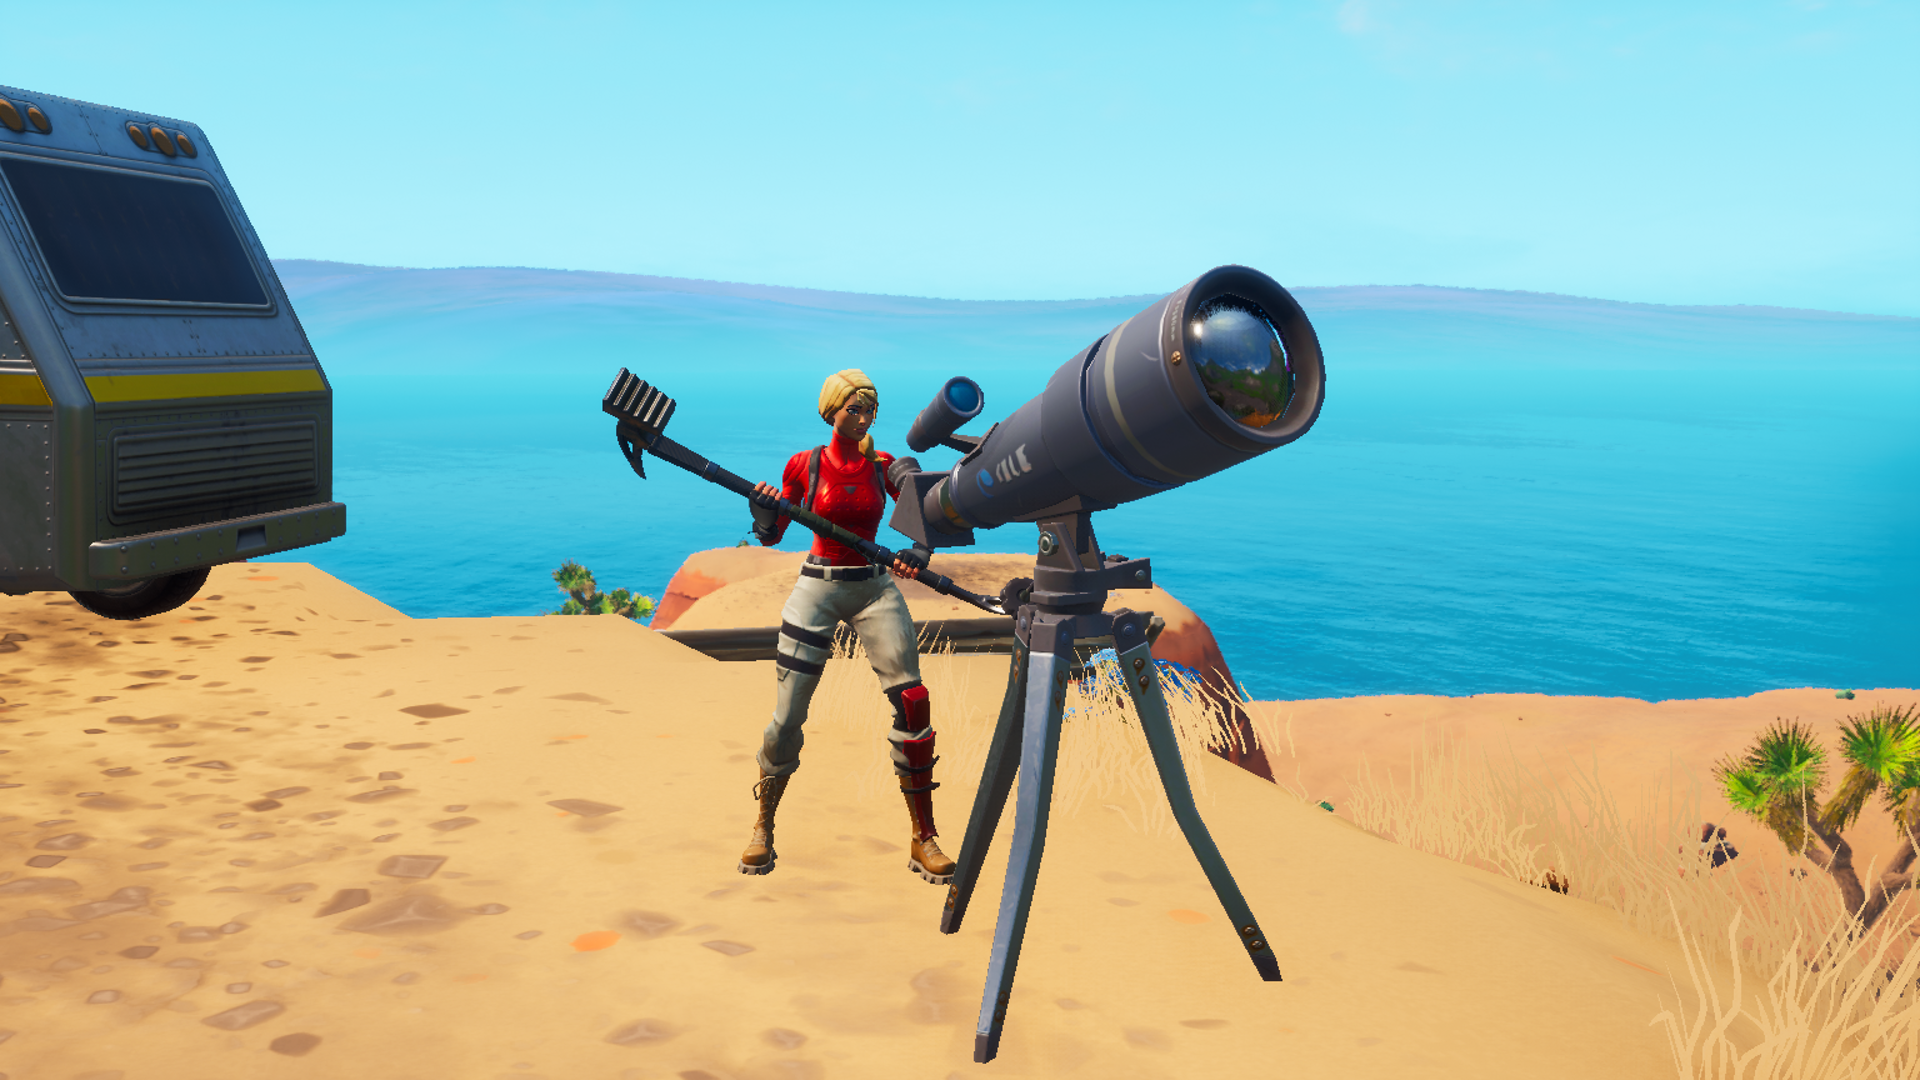 A Fortnite player stands behind a telescope in the middle of the desert